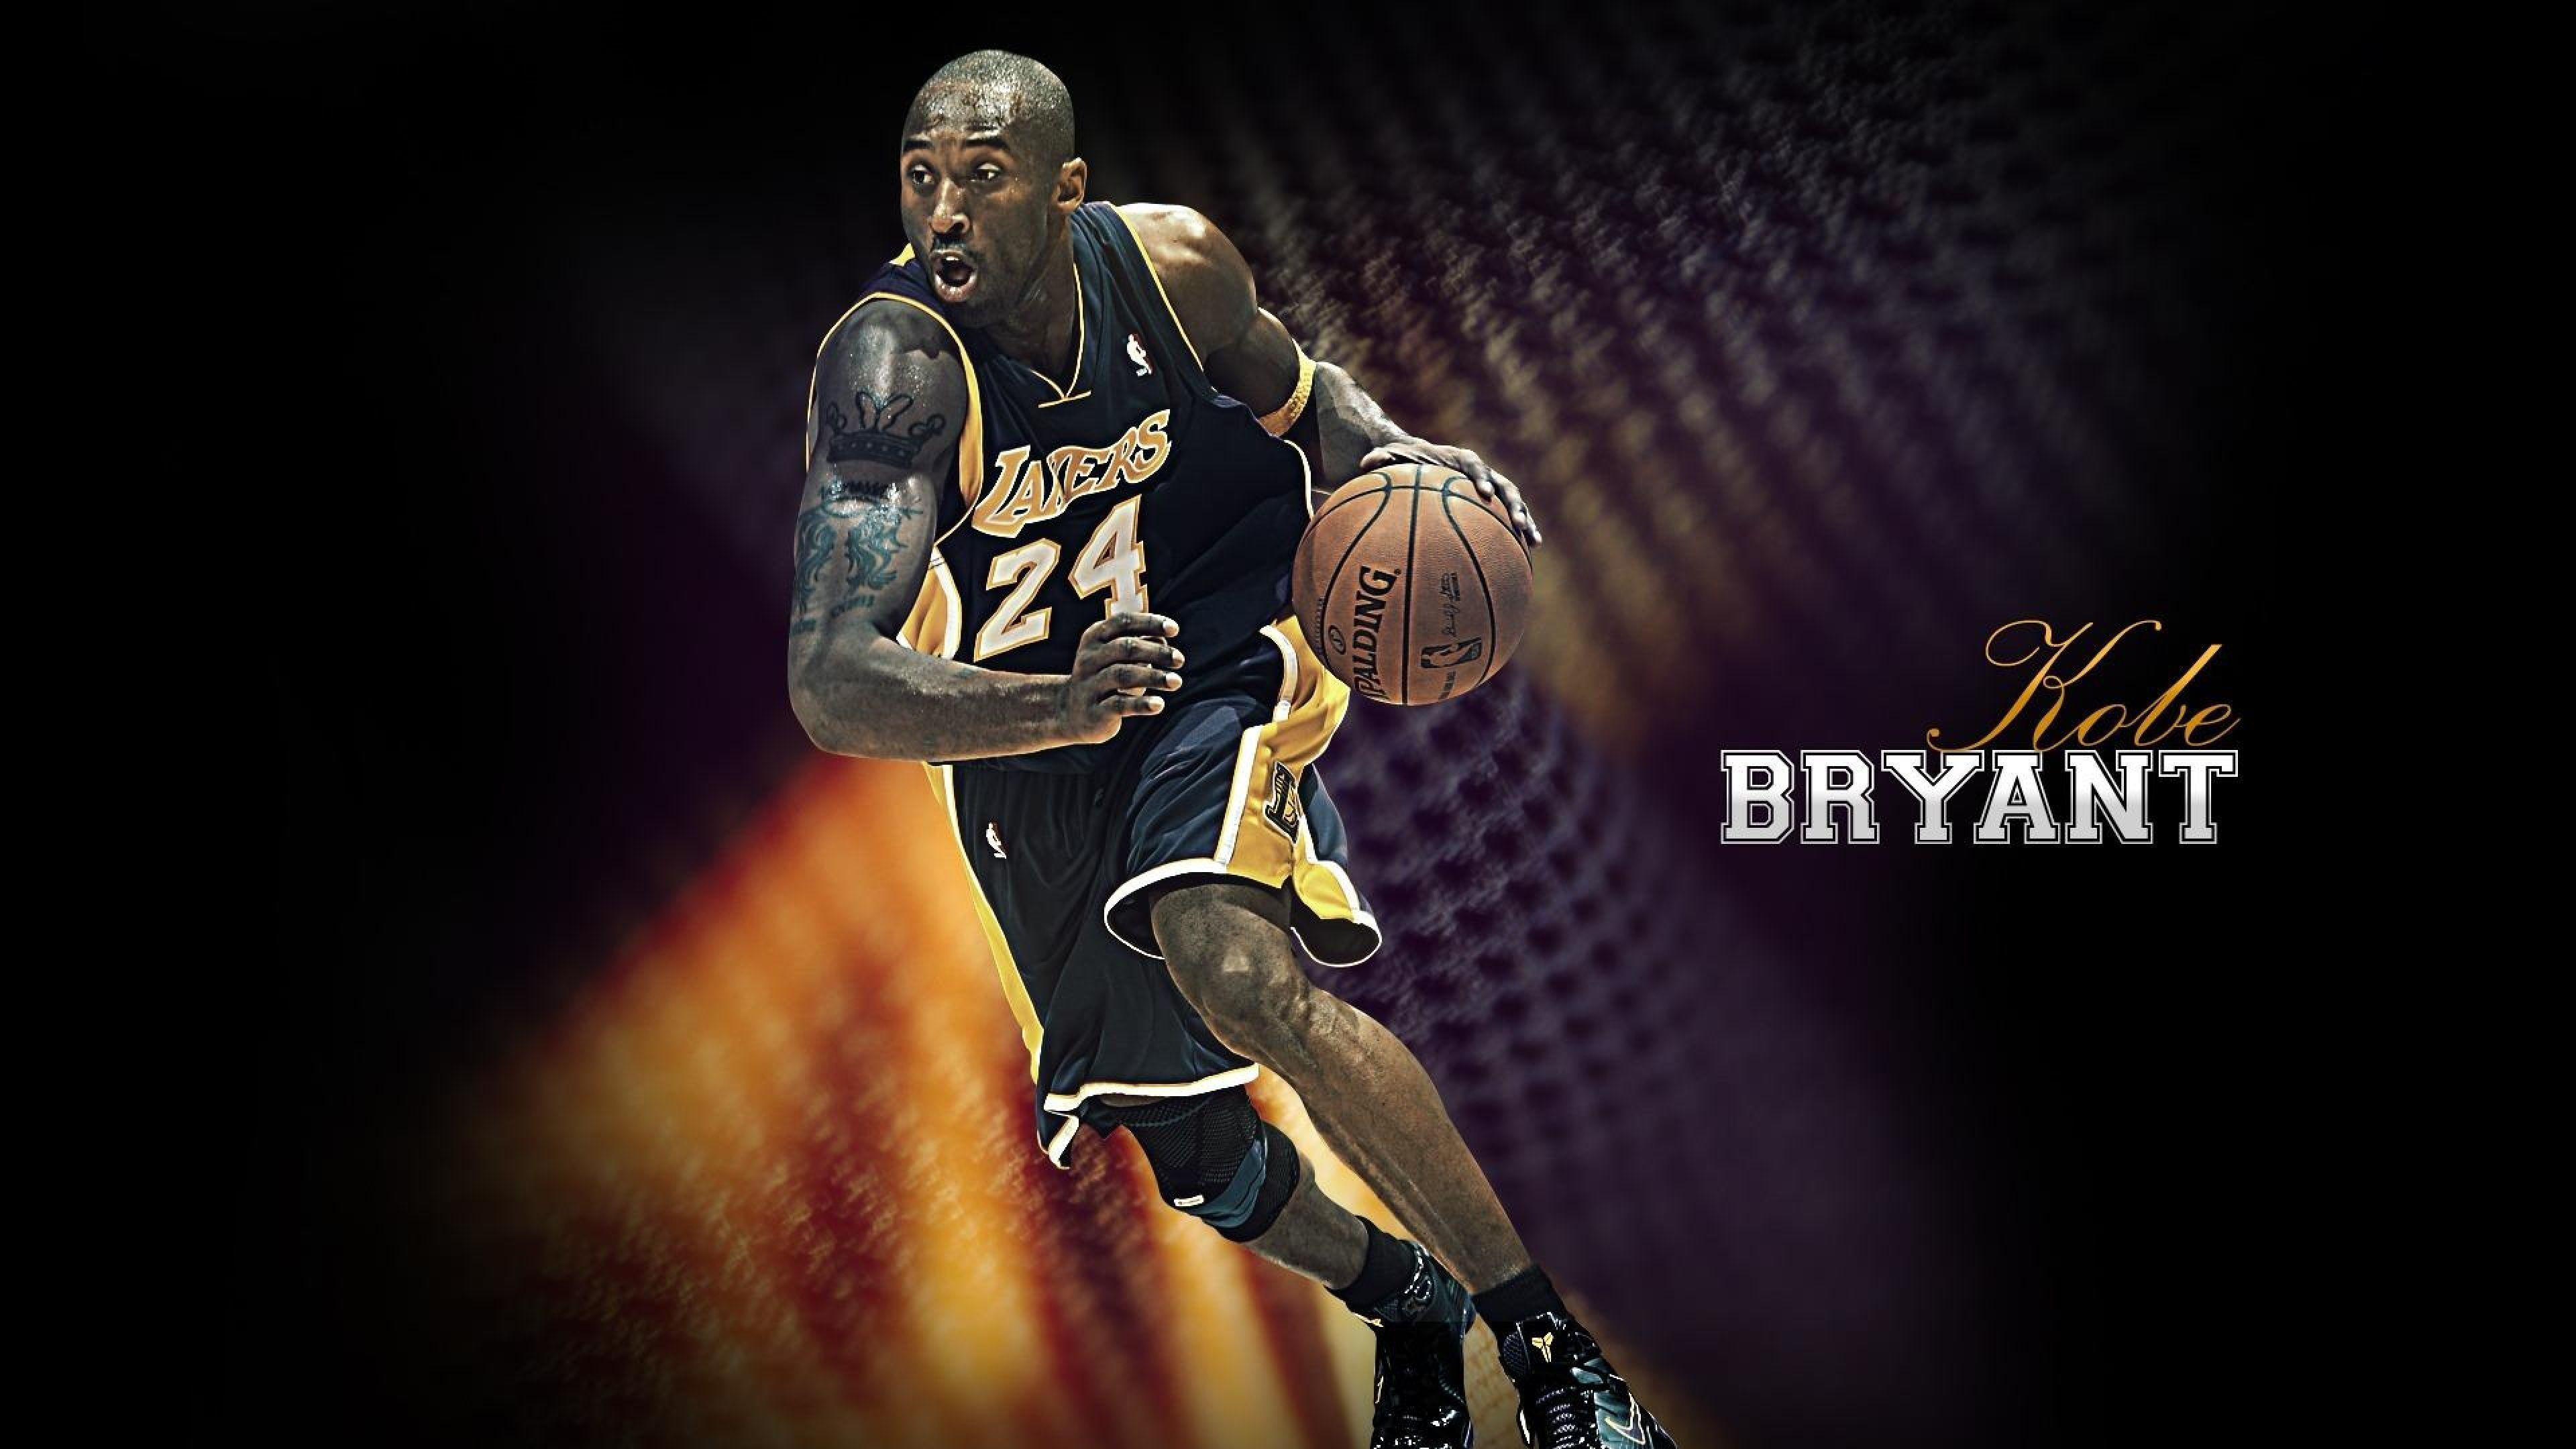 Kobe Bryant Wallpapers HD 2017